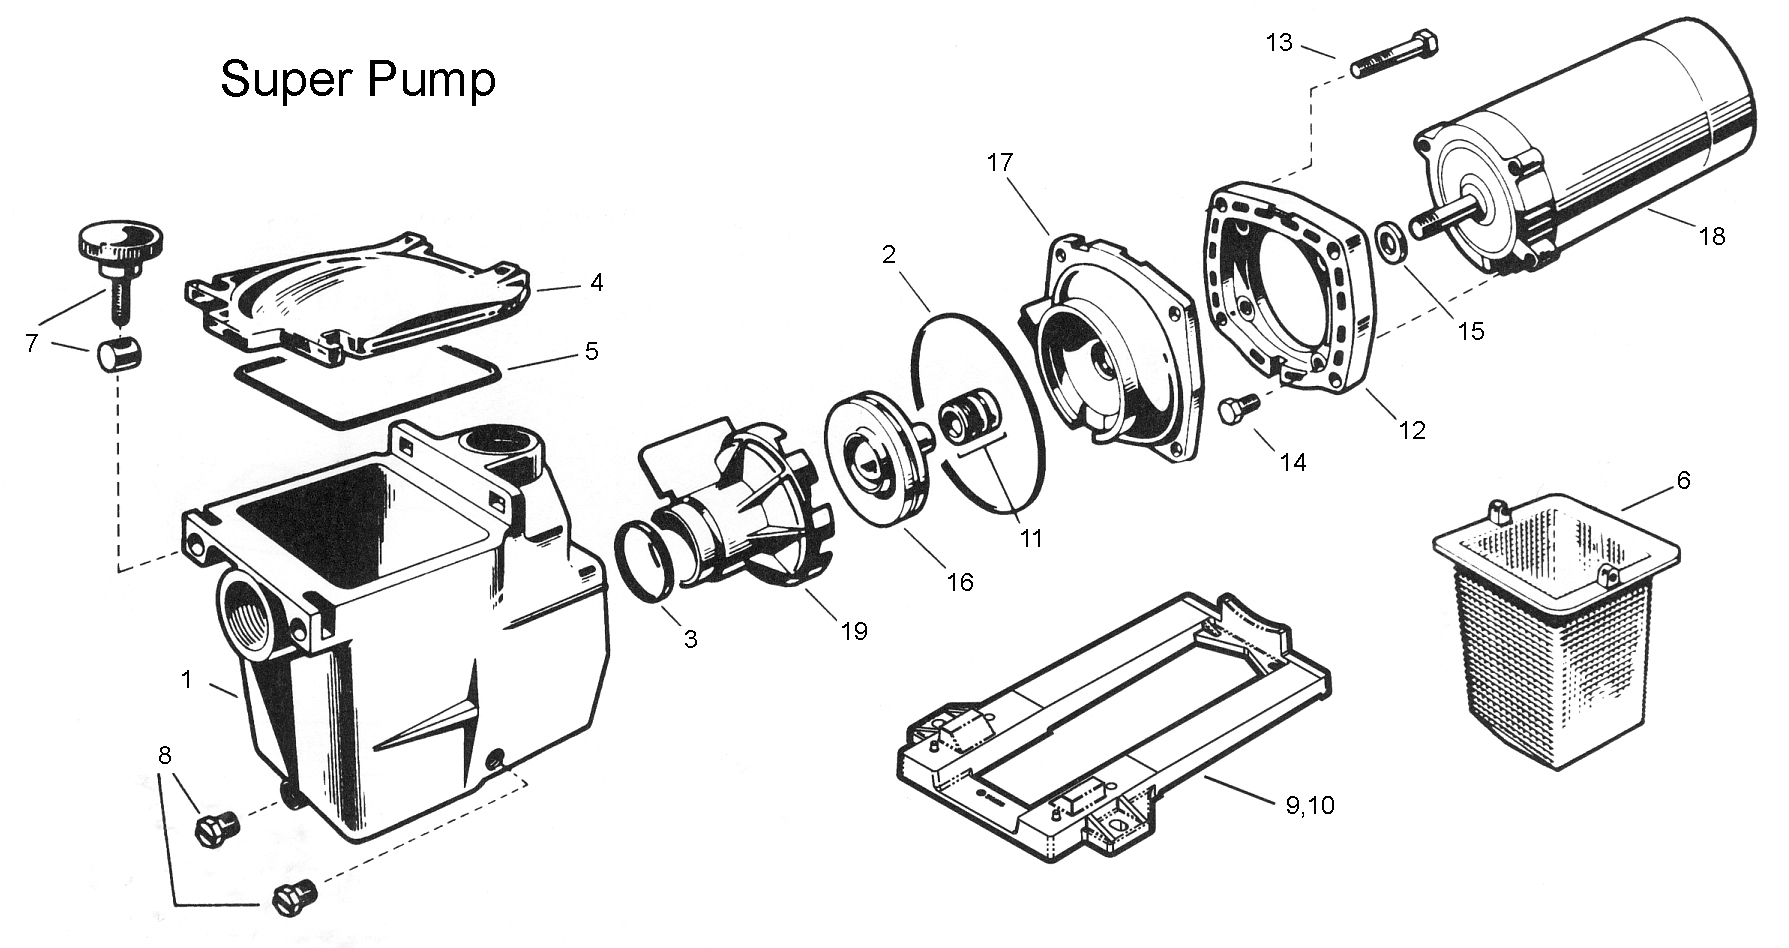 Free Shipping On Hayward Super Pump 2600X Parts inside Ao Smith Pool Pump Motor Parts Diagram